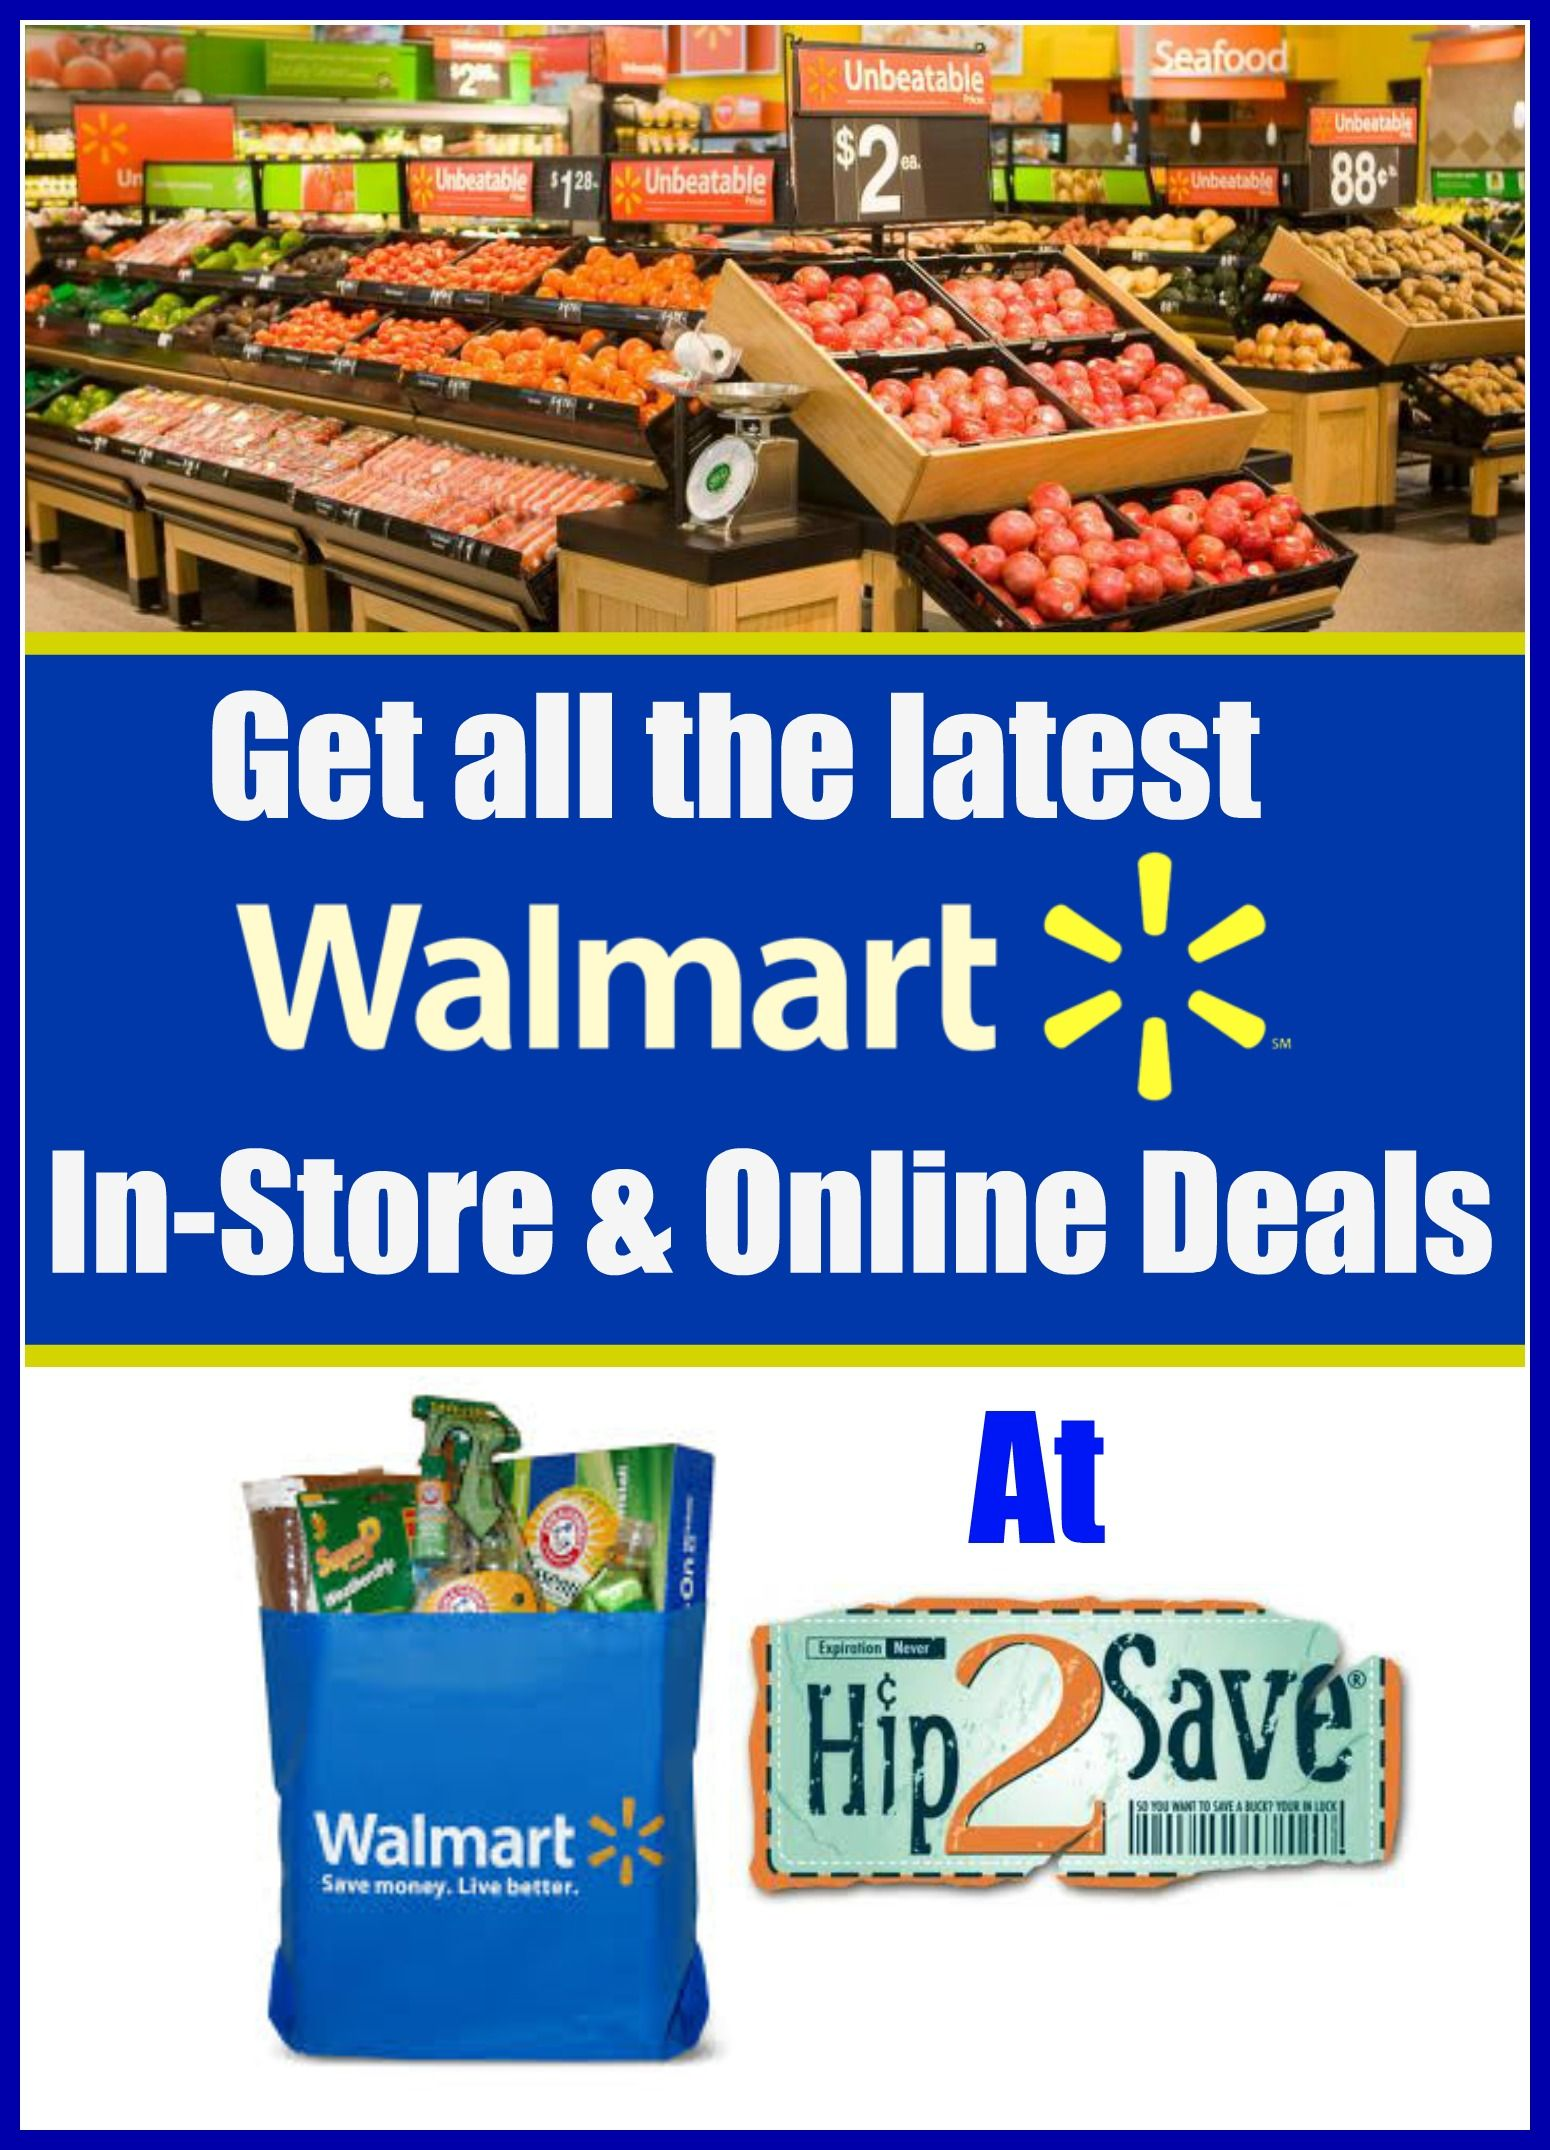 Get the latest Walmart coupons and instore and online